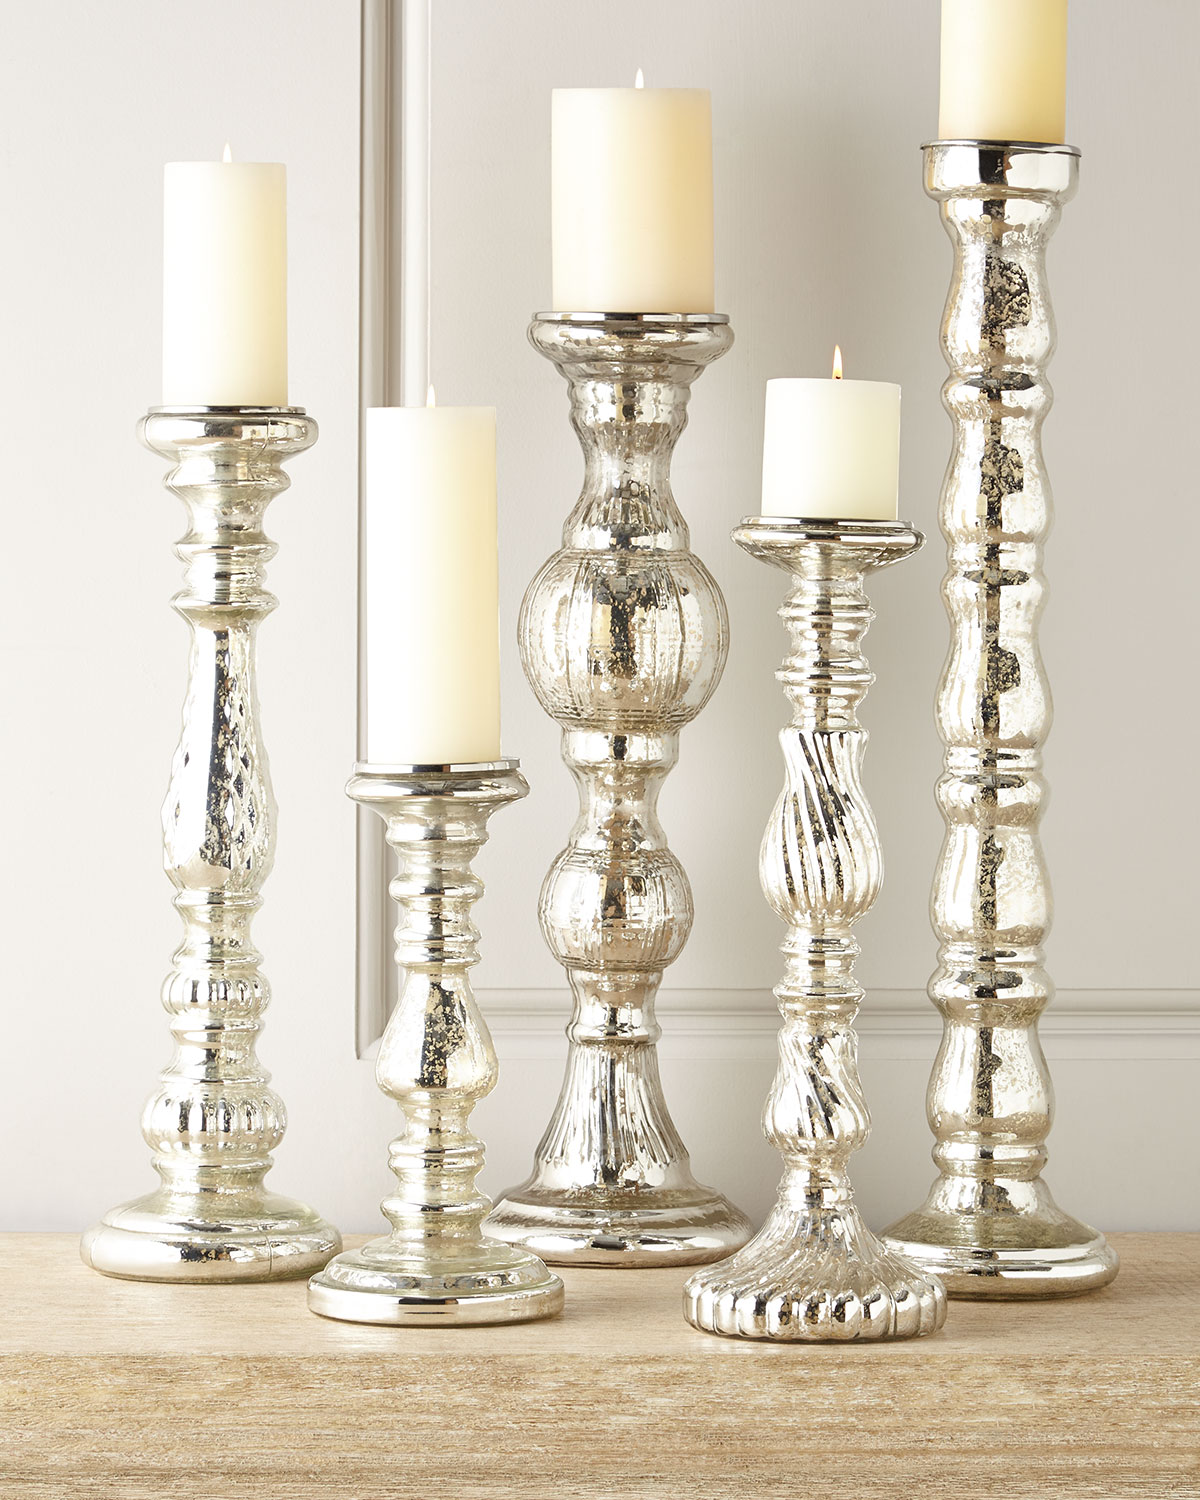 Five Mercury-Glass Candleholders, Silver